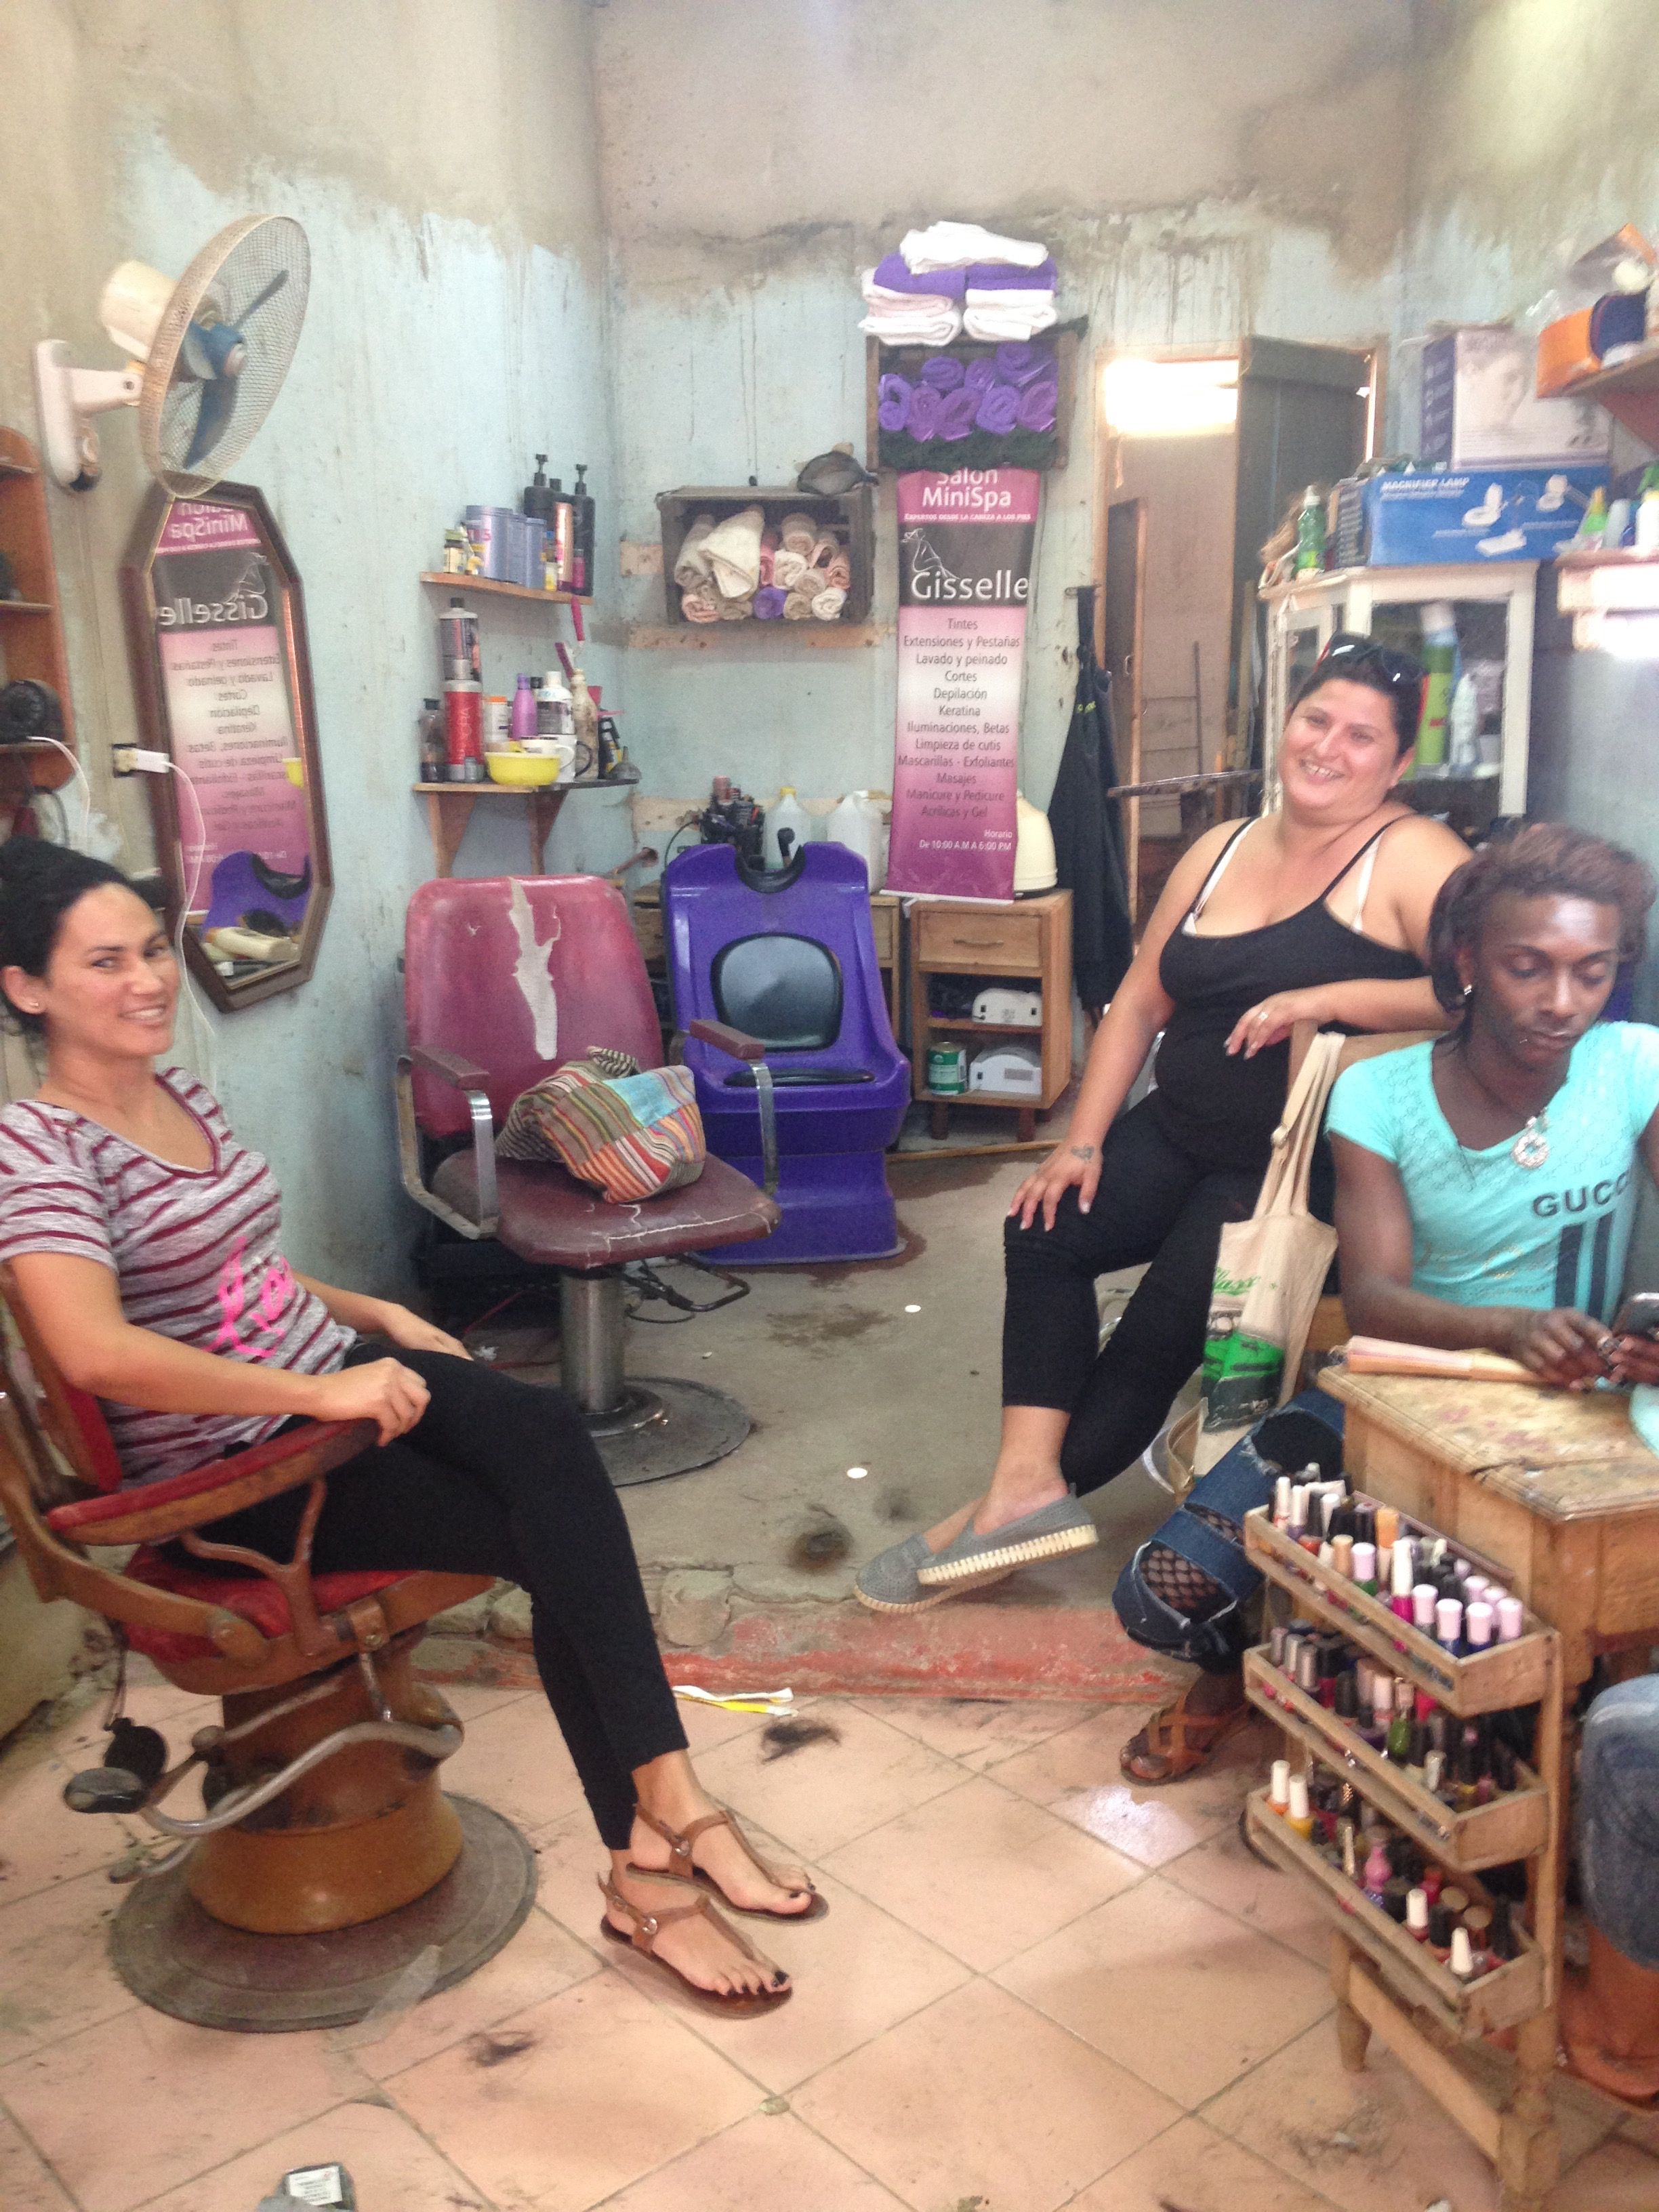 Yisel, dressed in black, is the proud owner of Salon Giselle in Trinidad, Cuba, where she and her employees make their living beautifying local women. Photo by Caroline Kelly